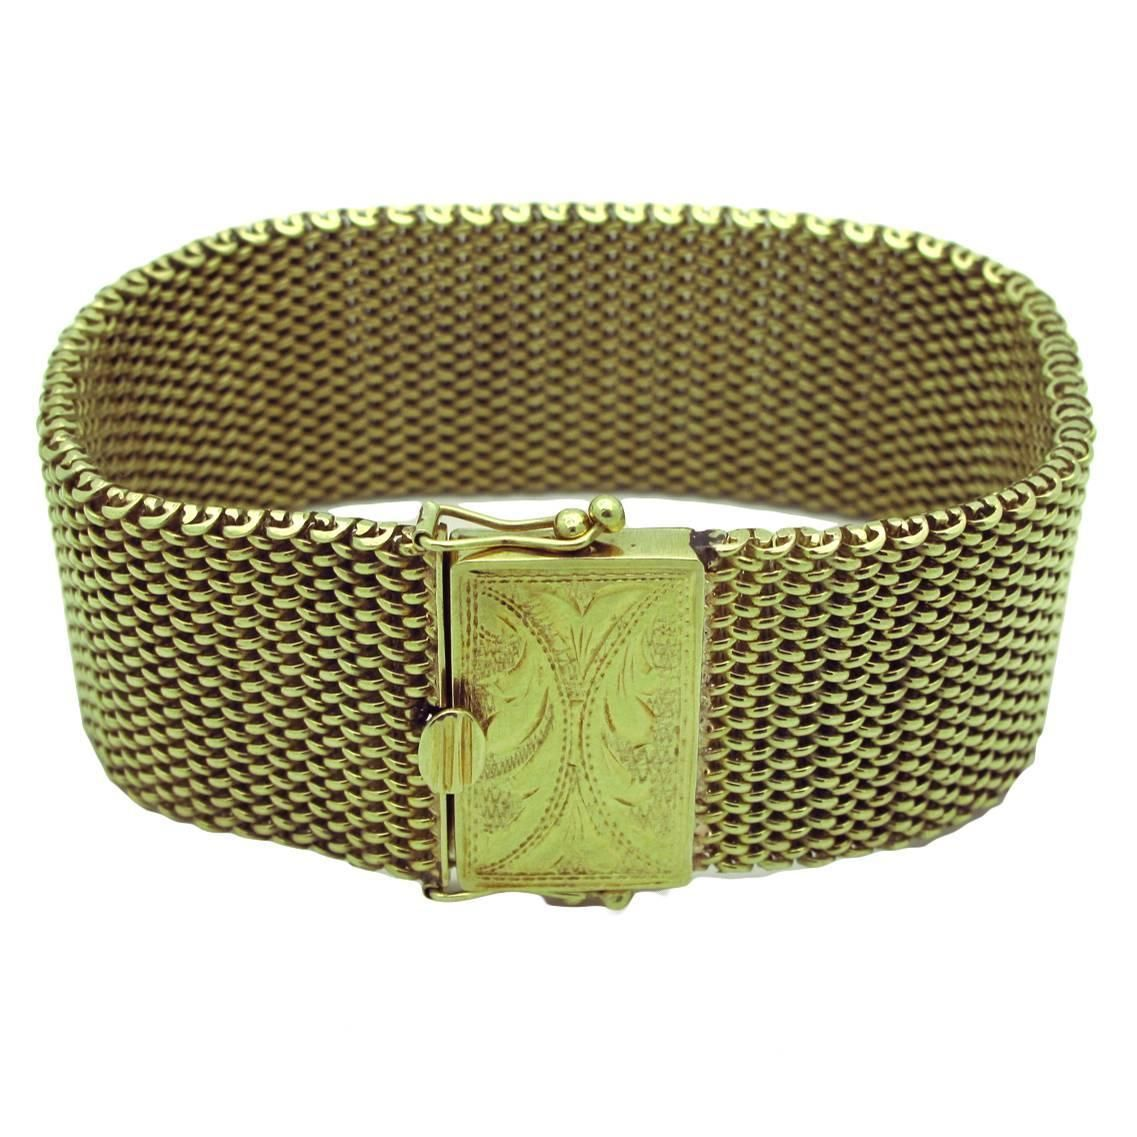 Gold Mesh Bracelet With Engraved Clasp Mesh bracelet